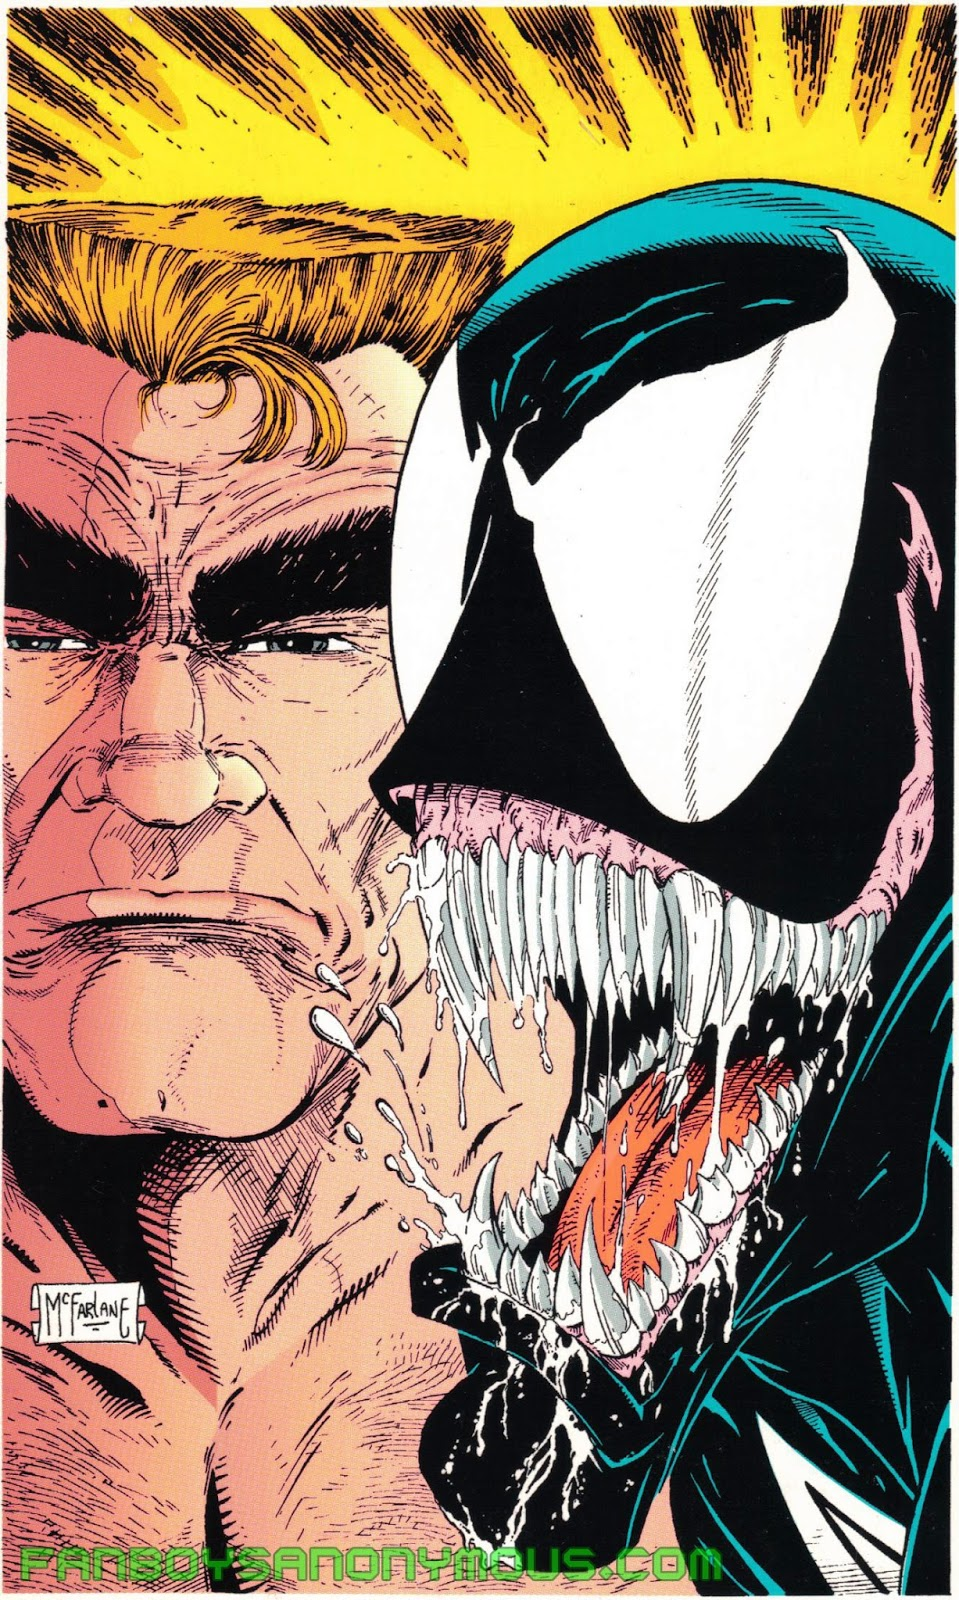 Buy The Art of Todd McFarlane: The Devil is in the Details on Amazon